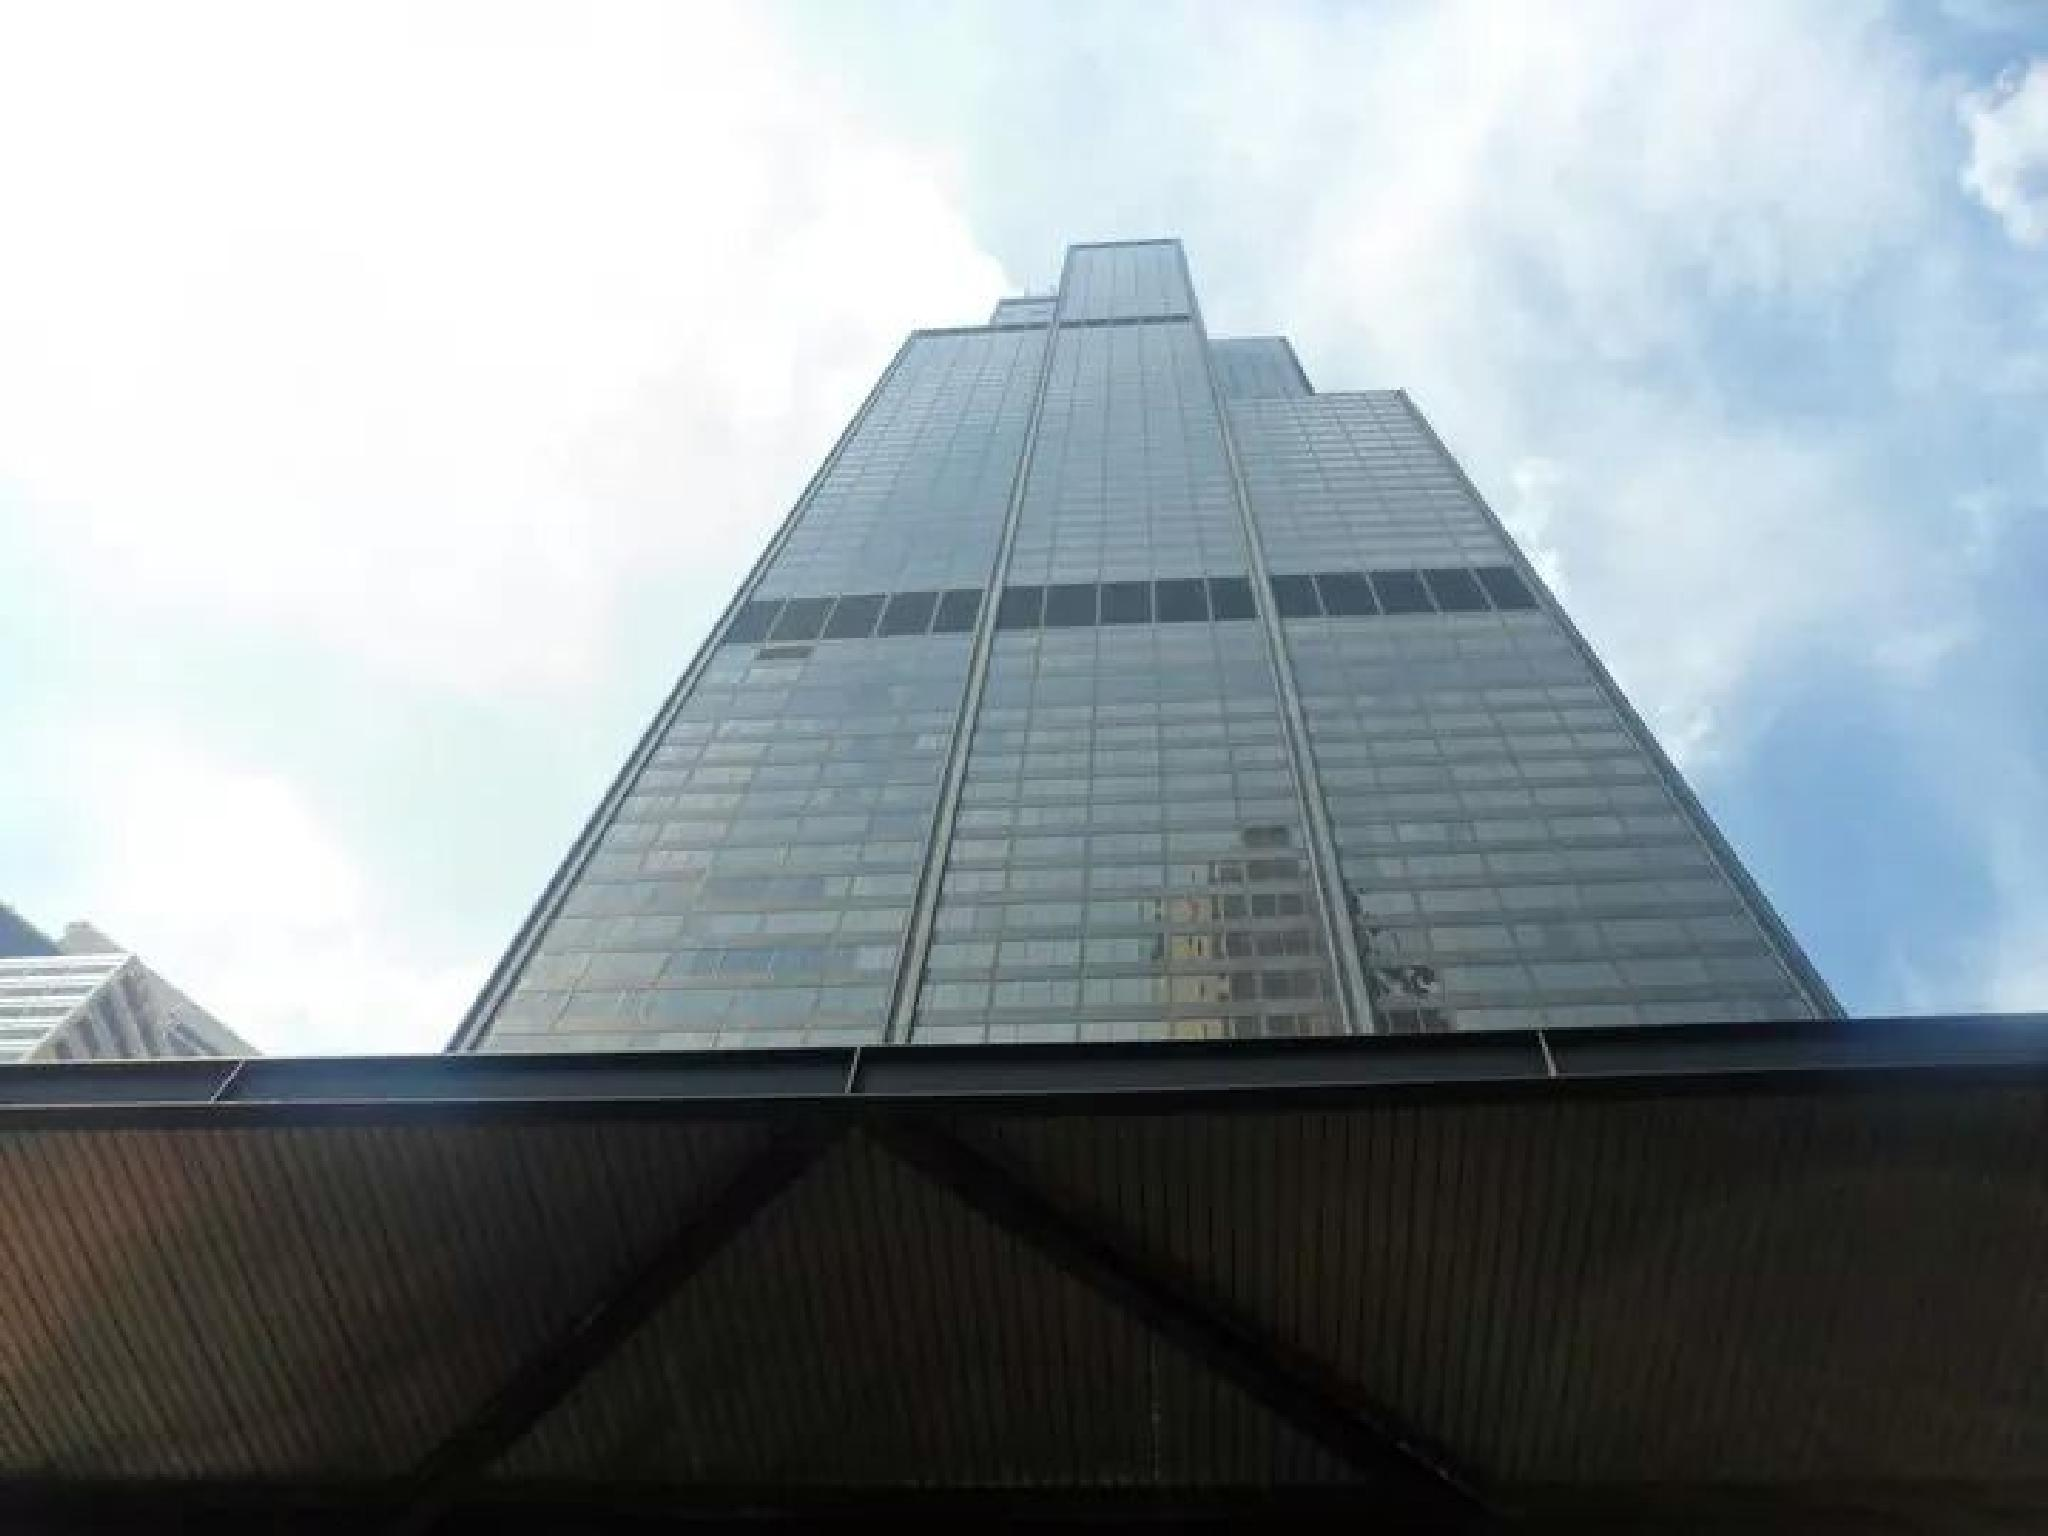 Sears Tower Building by jessica.k.whitehead1